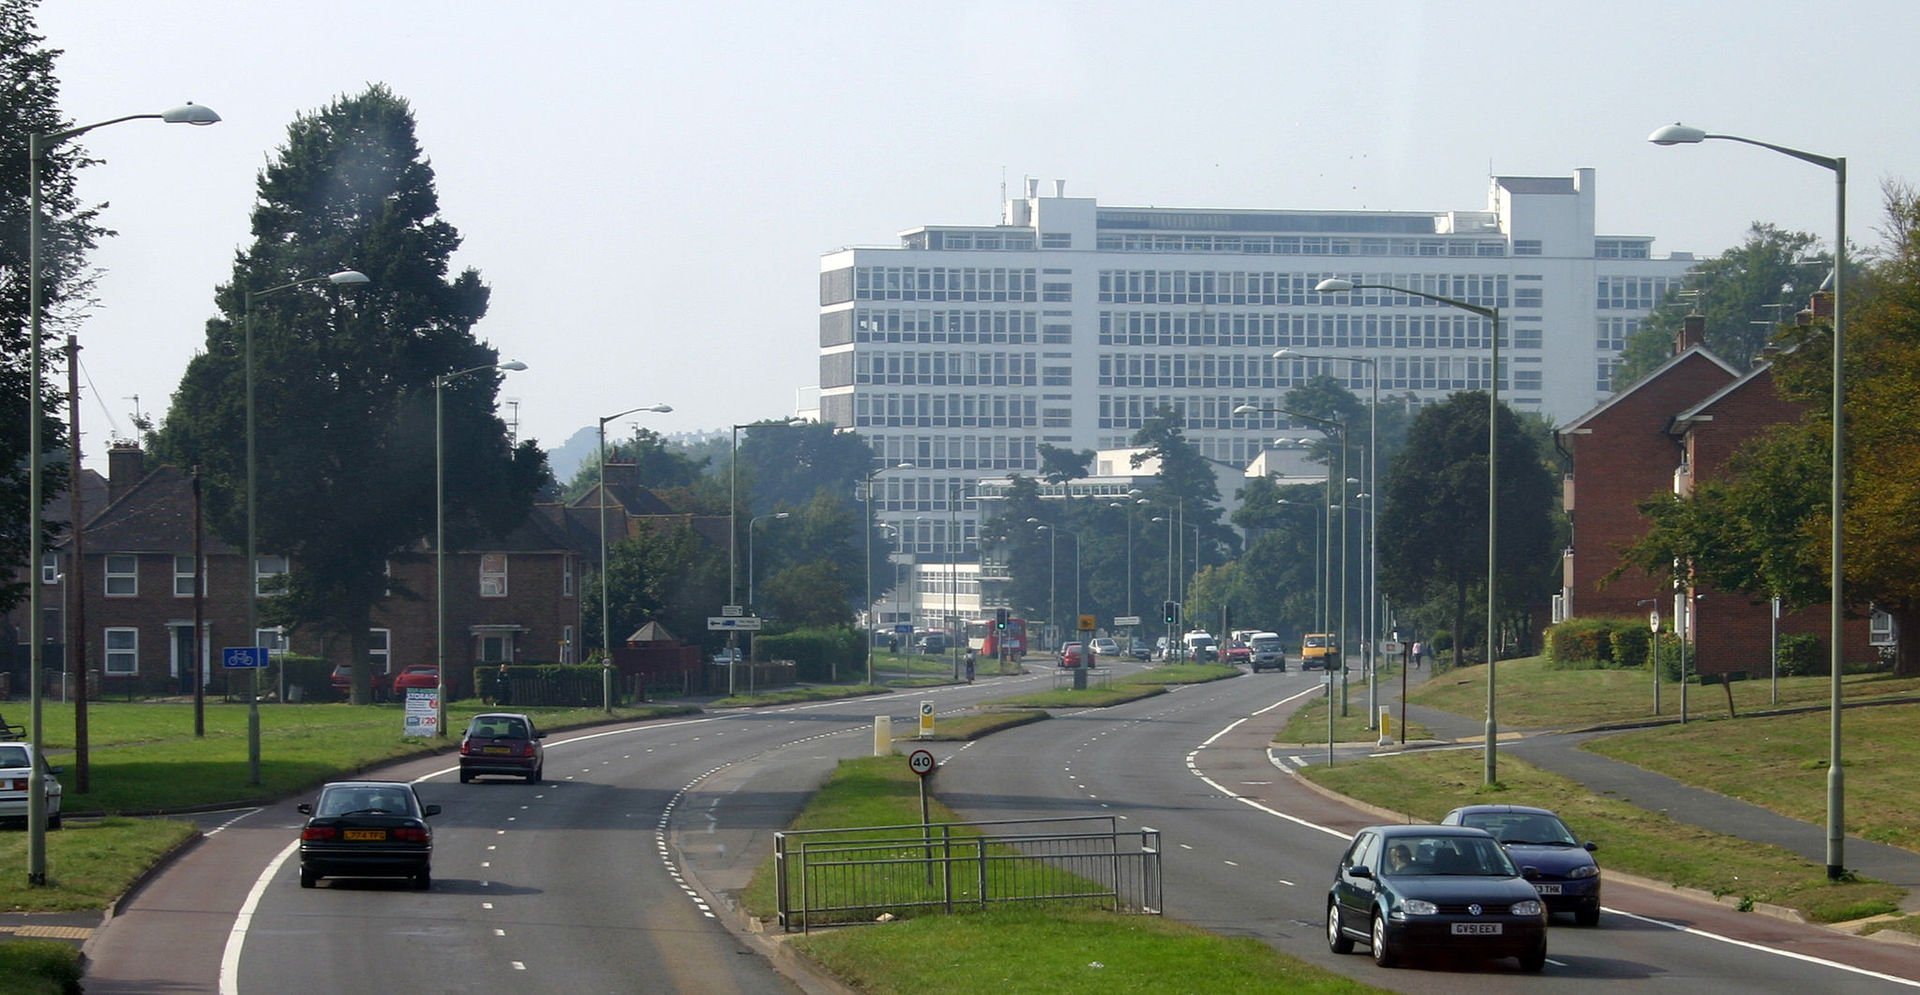 University of Brighton - Cockcroft building